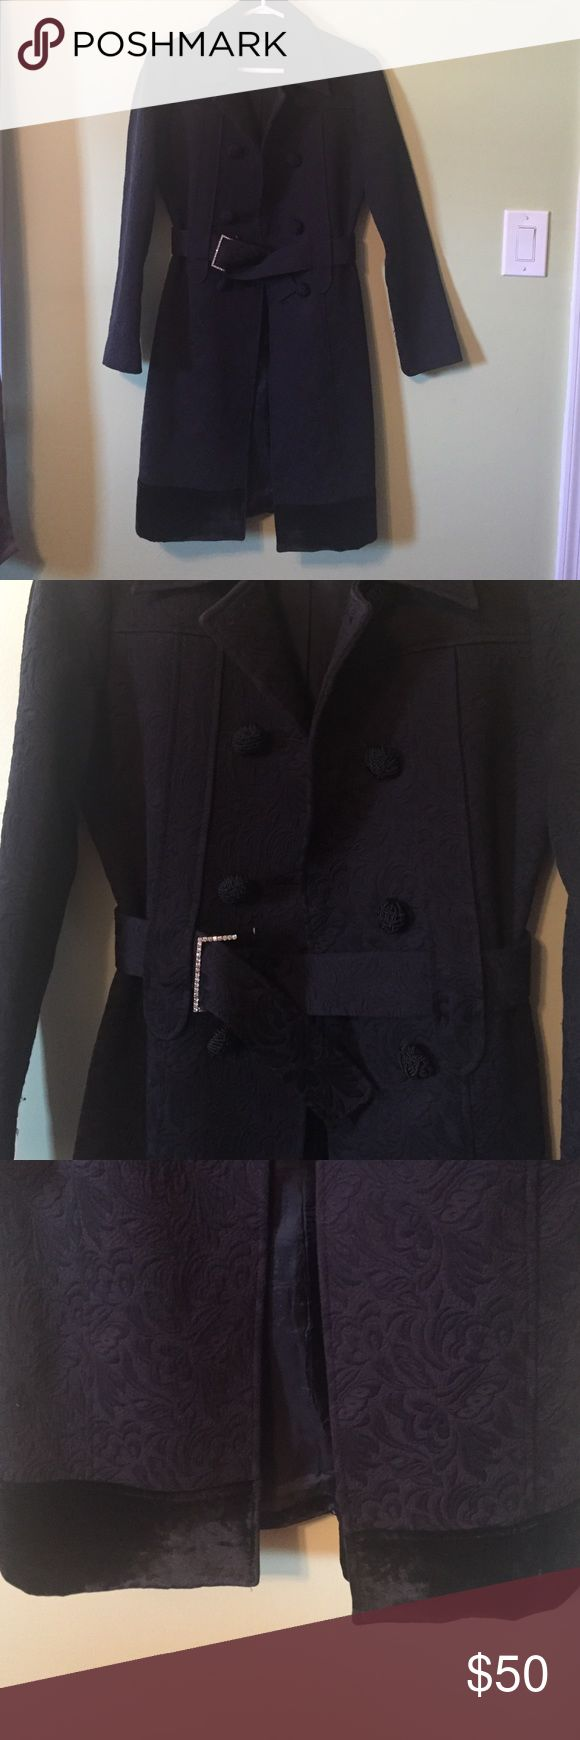 Arden B black coat Barely worn! Super adorable black coat with fun button detail, sparkly belt holder and velvet like material on bottom. Size S. Arden B Jackets & Coats